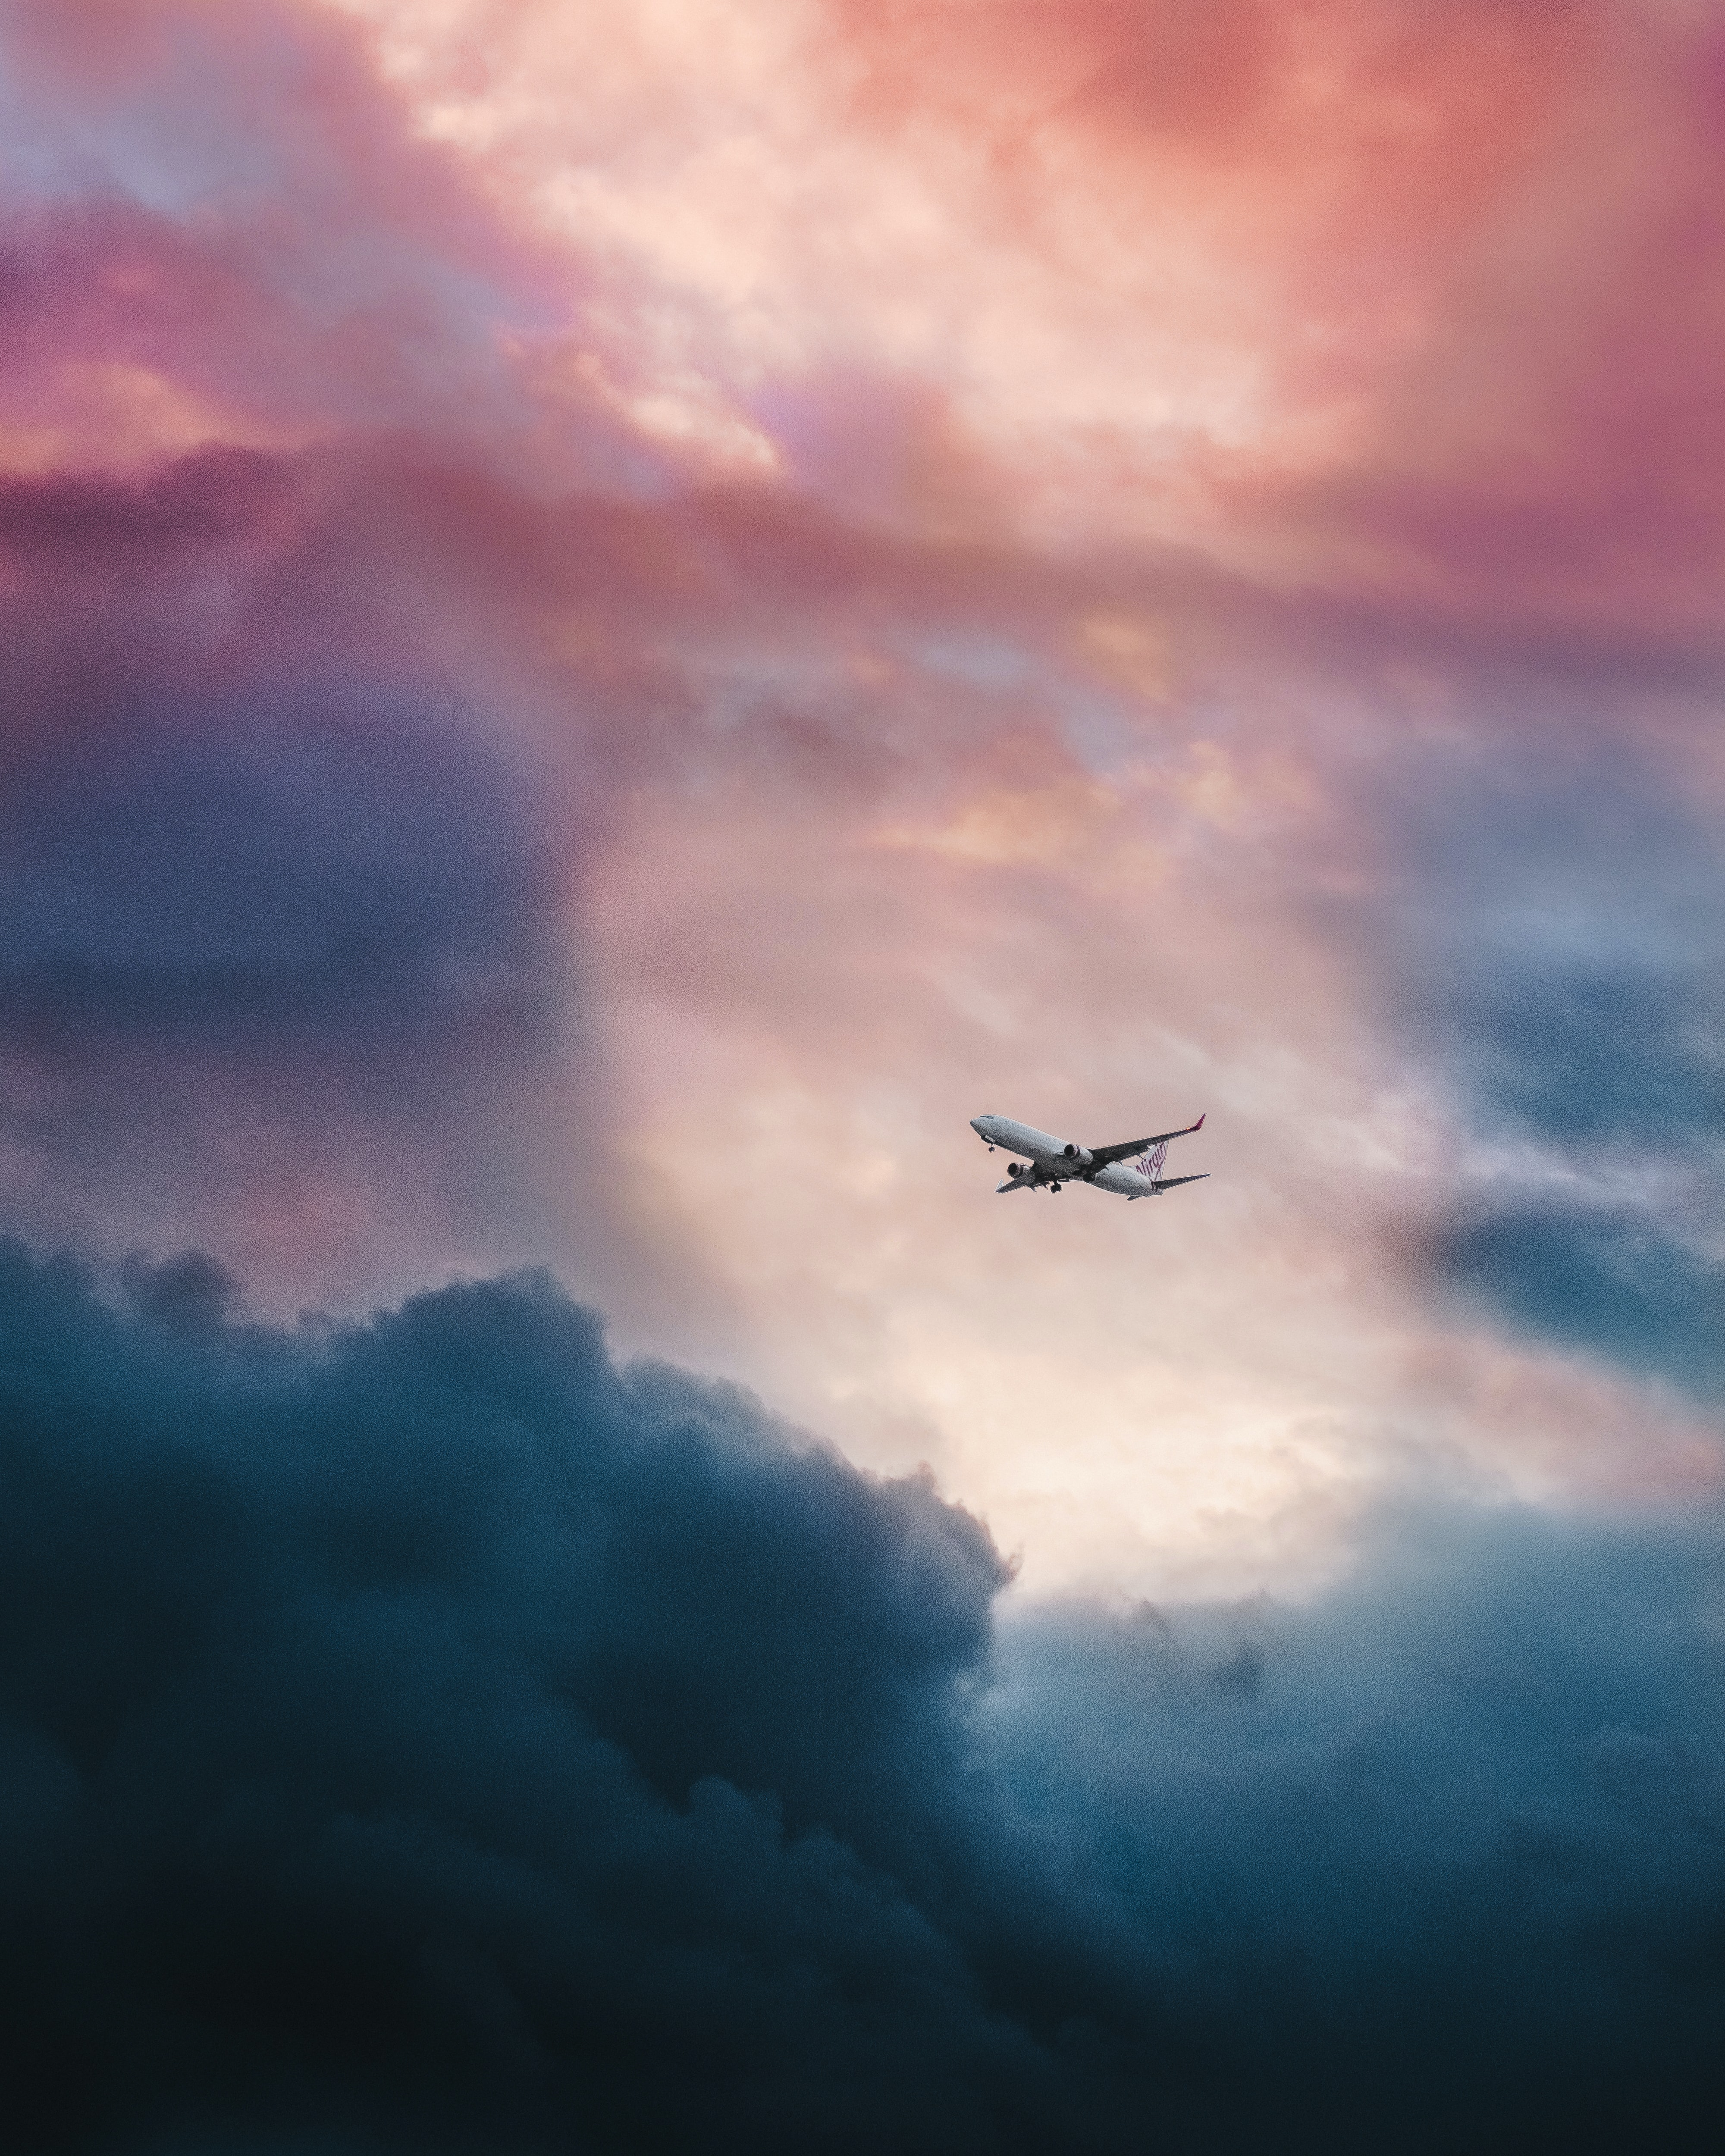 A low-angle shot of an airplane in flight with sun shining through the clouds